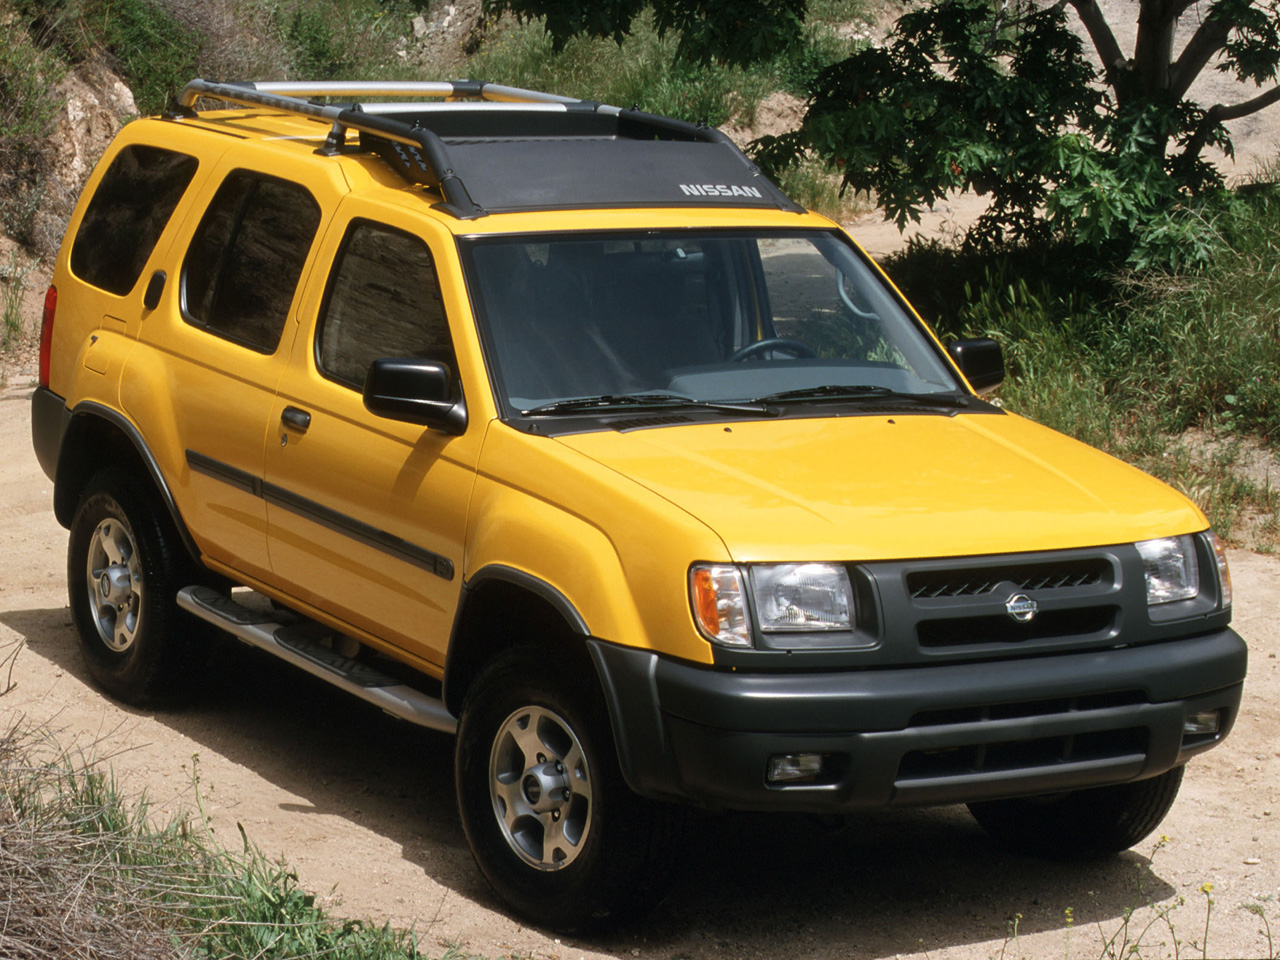 2002 Nissan Xterra wd22 – pictures information and